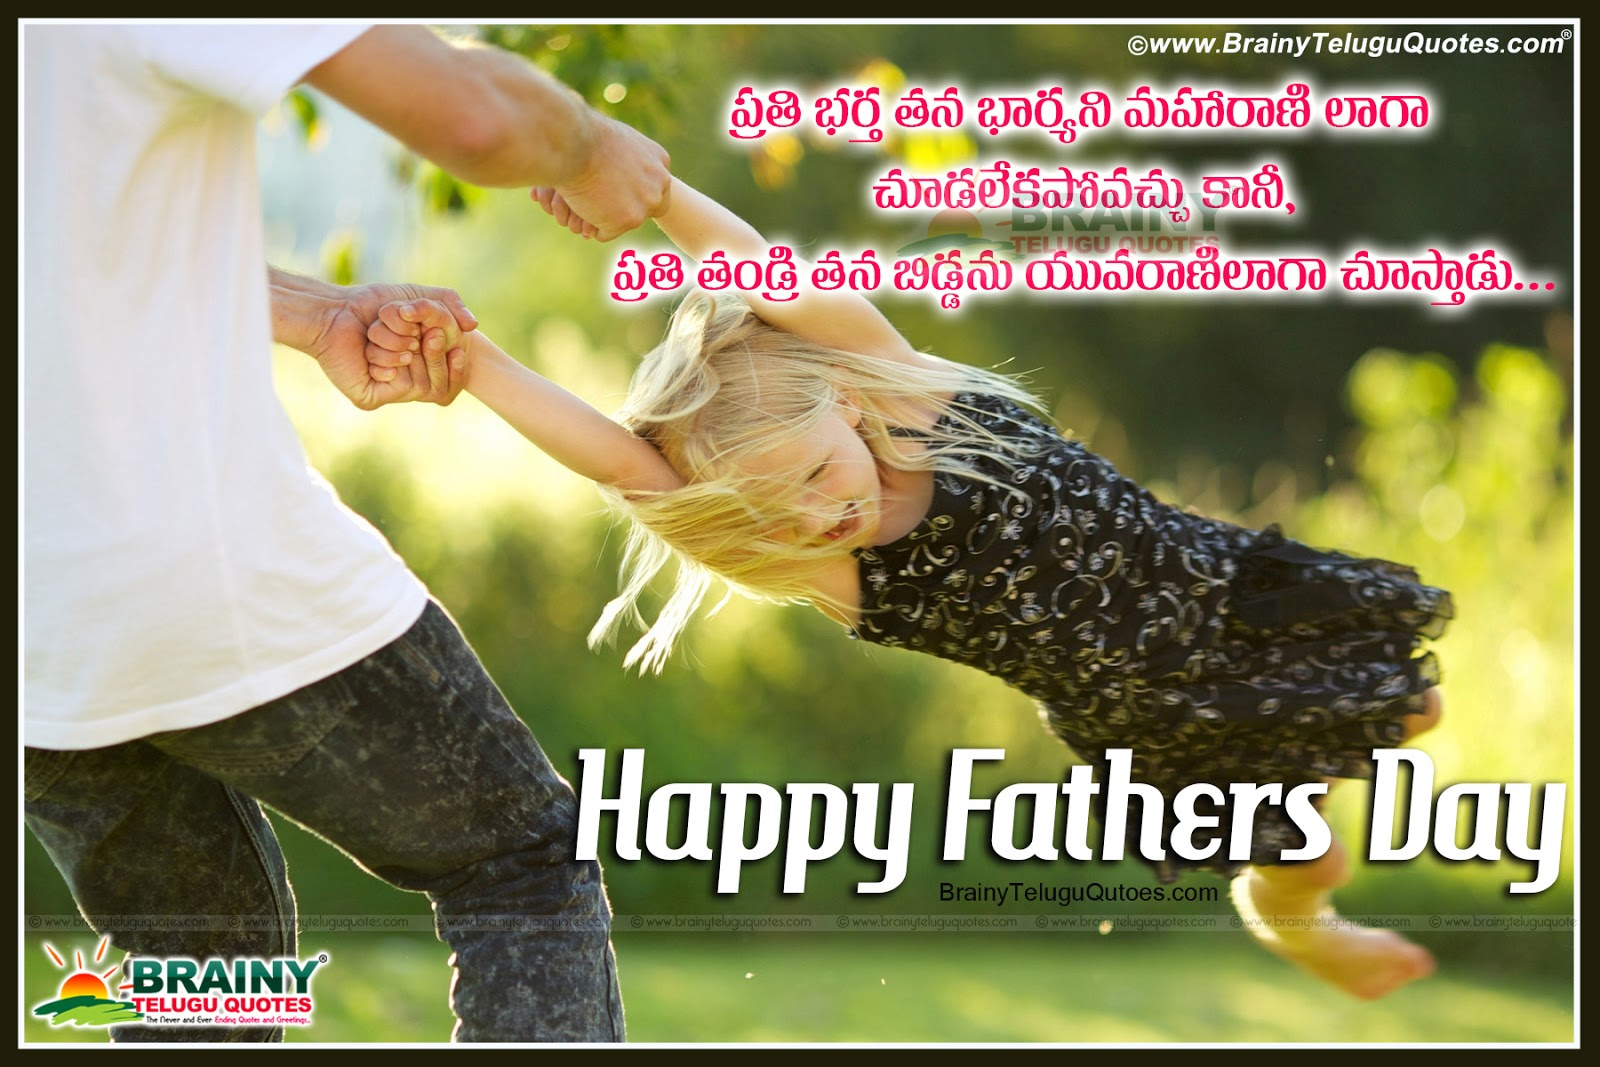 Telugu Fathers Day Quotes with awesome child with father hd 1600x1067